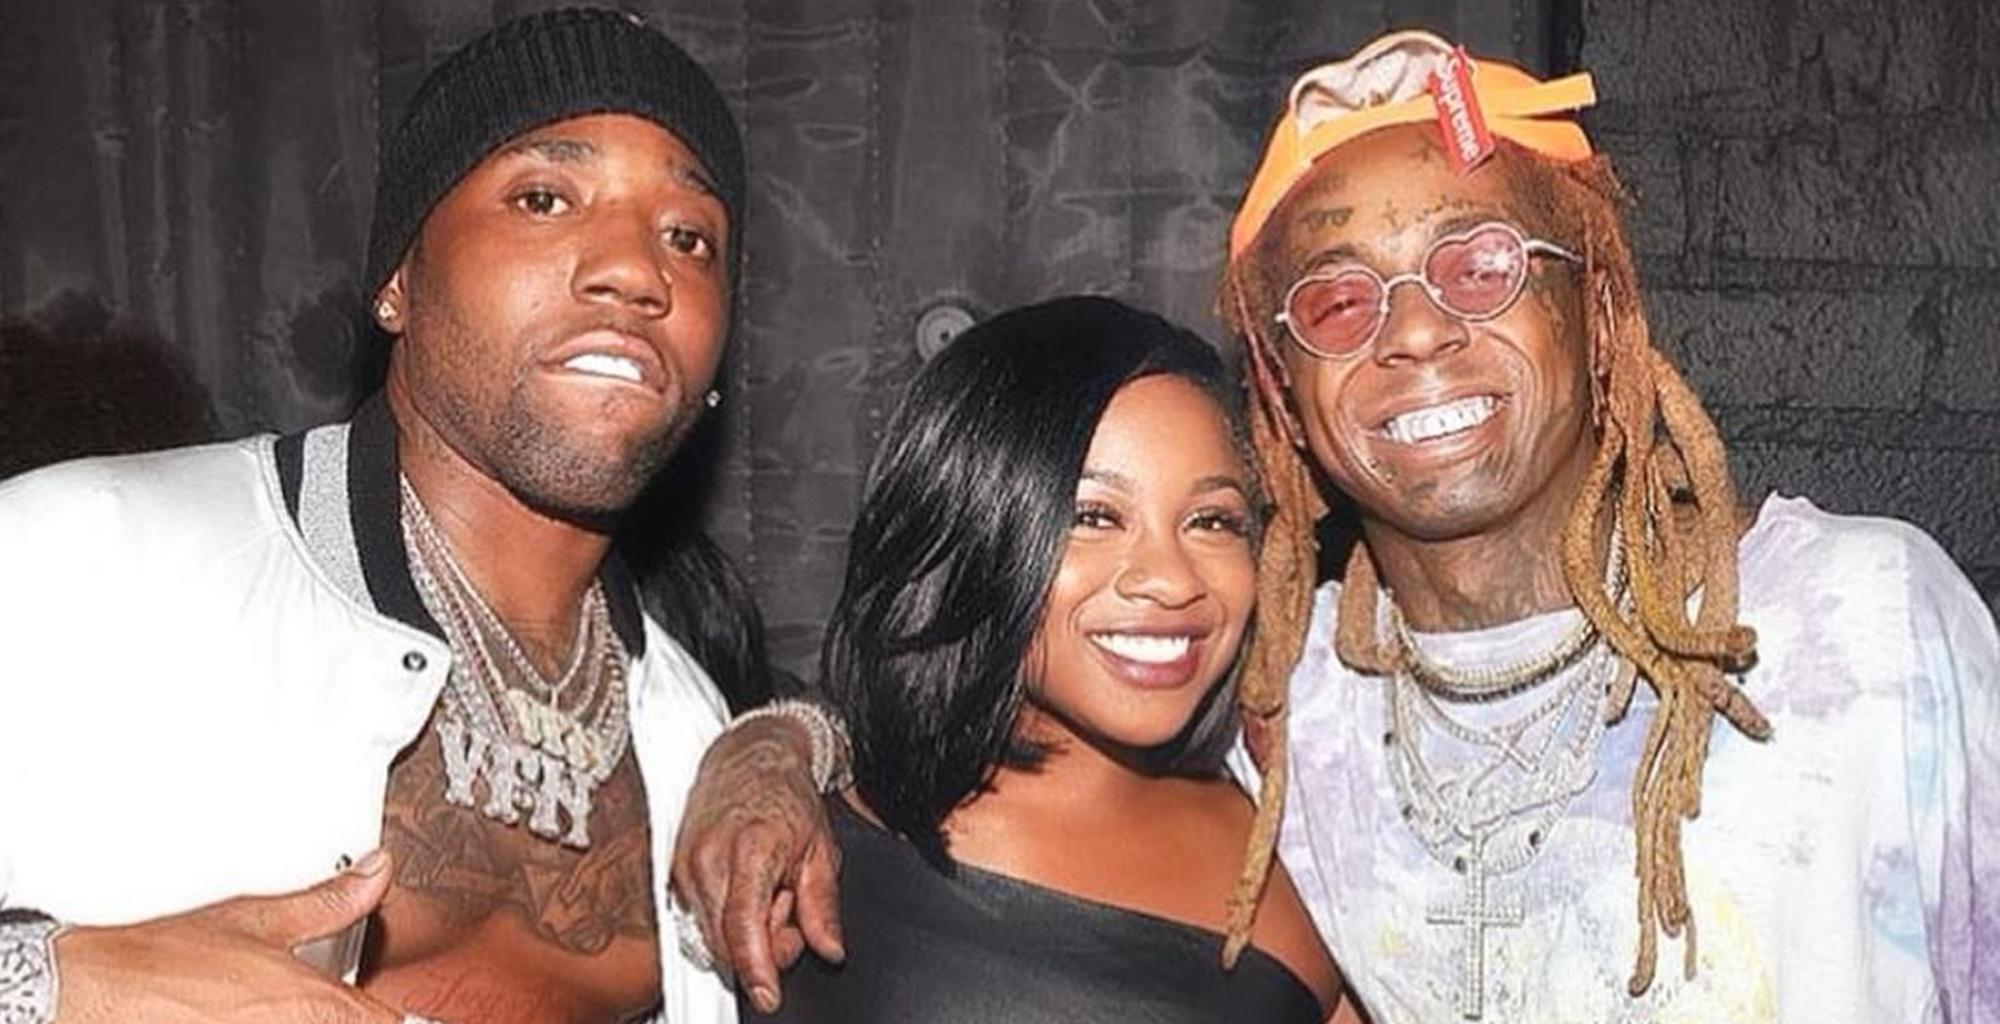 Reginae Carter's Fans Are Terrified And Believe Lil Wayne Should Intervene Because Her Relationship With YFN Lucci Is 'Toxic' - Learn What Happened